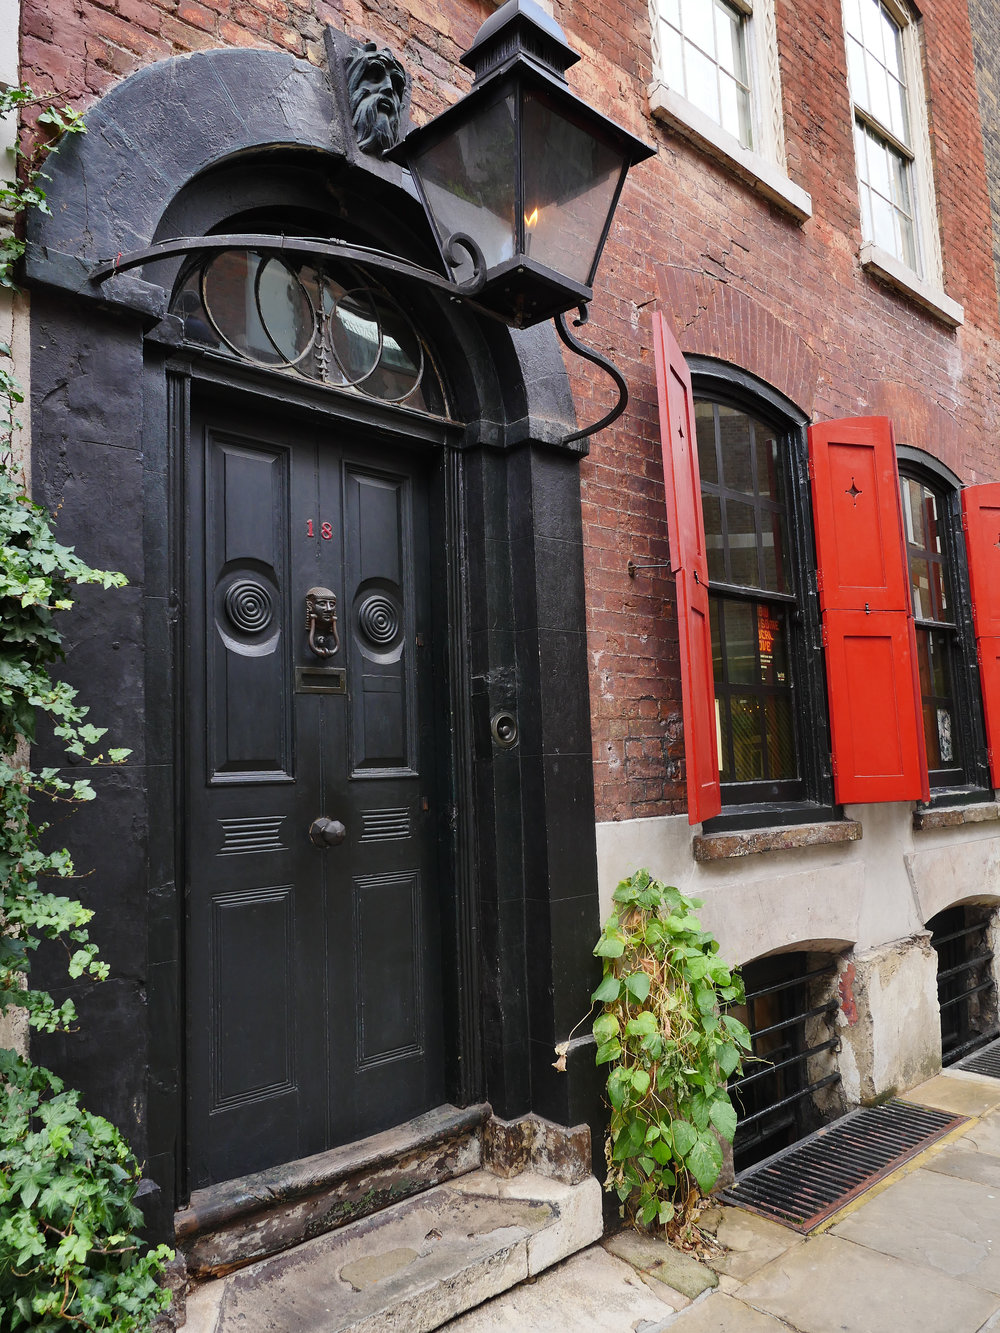 The Dennis Severs House, 18 Folgate Street (Photo Mike Evans)